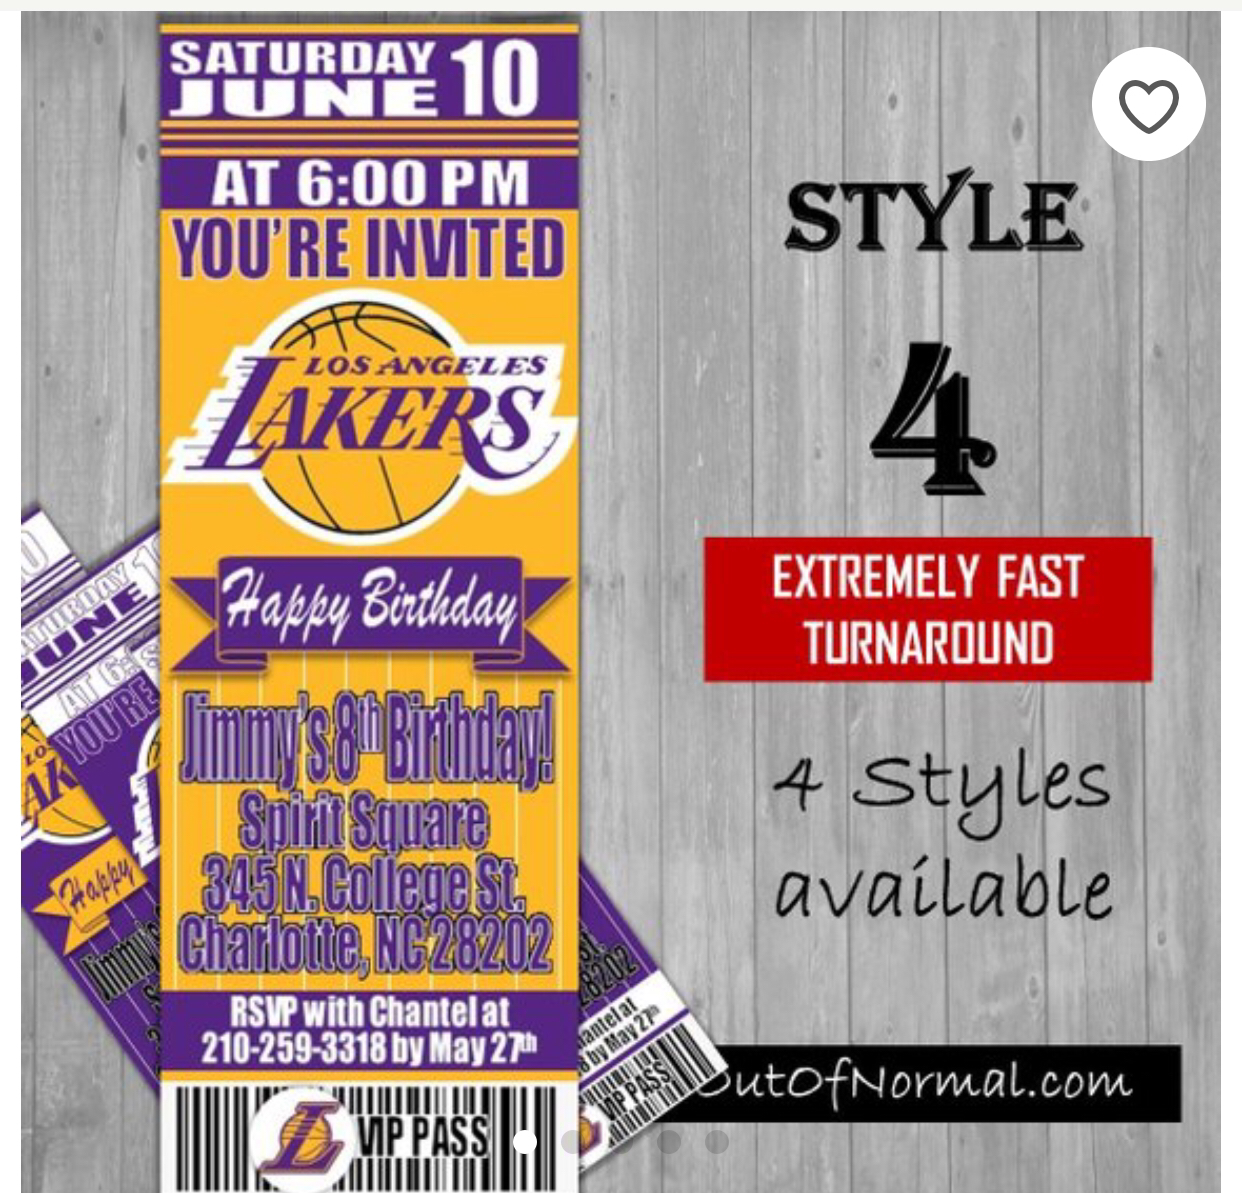 Los Angeles Lakers Basketball Ticket Style Invitation Ticket Style Invitations Basketball Birthday Invitations Ticket Invitation